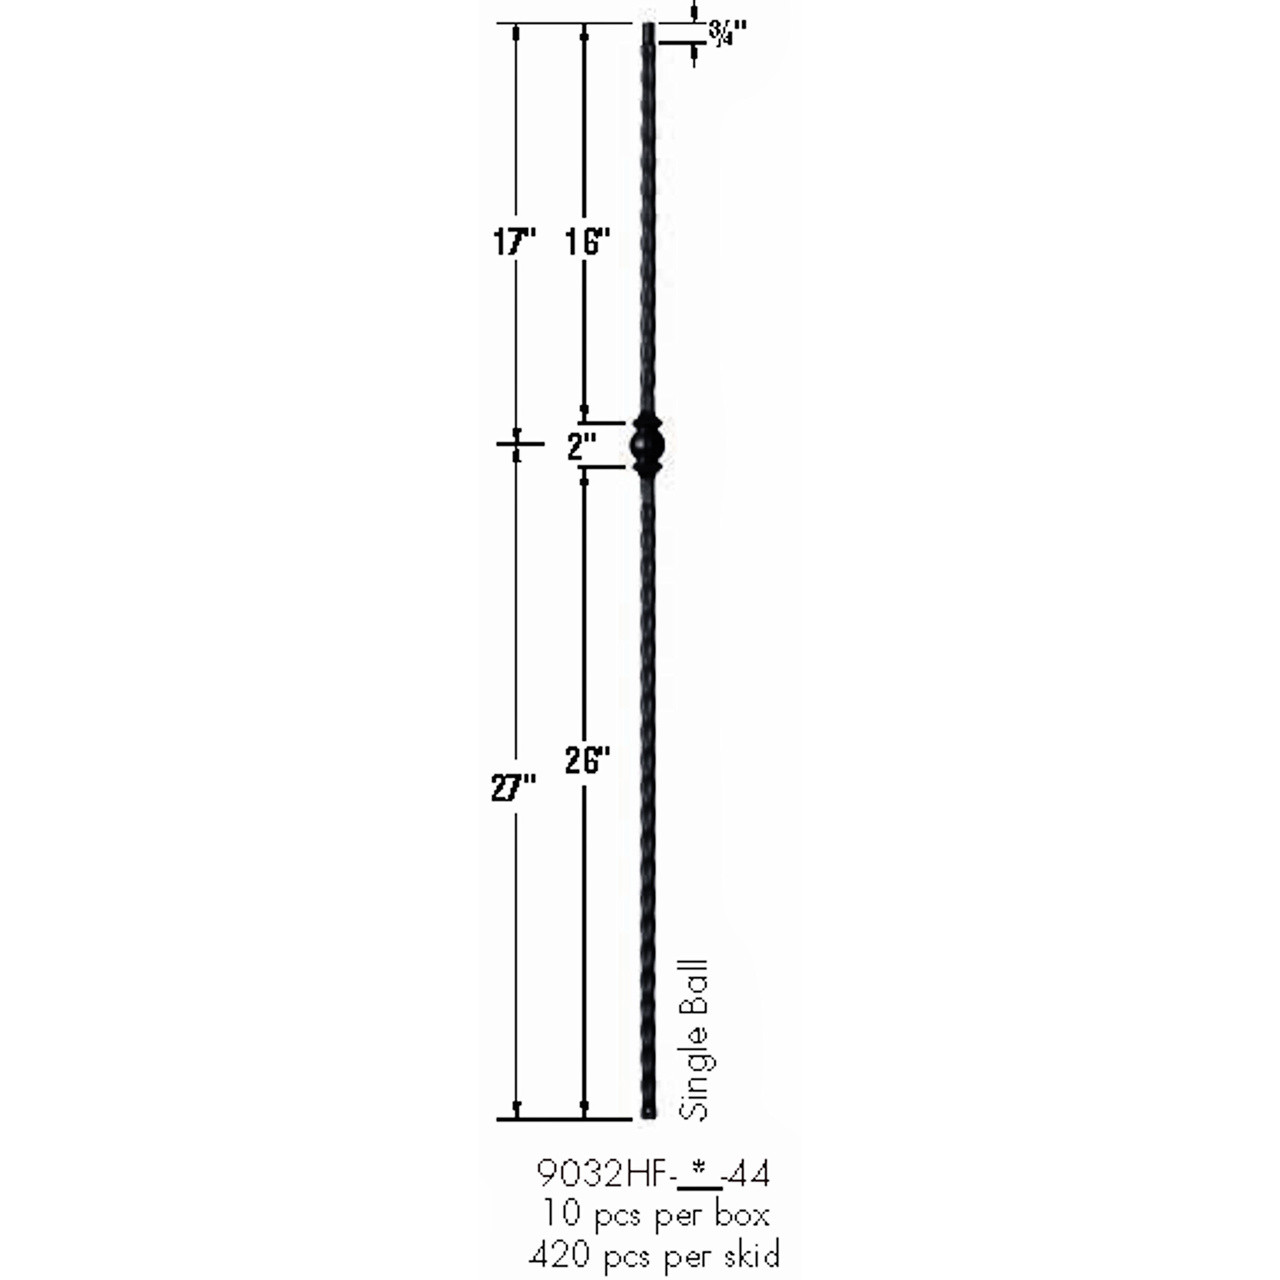 9032HF Single Ball with Hammered Face Baluster Dimensional Information